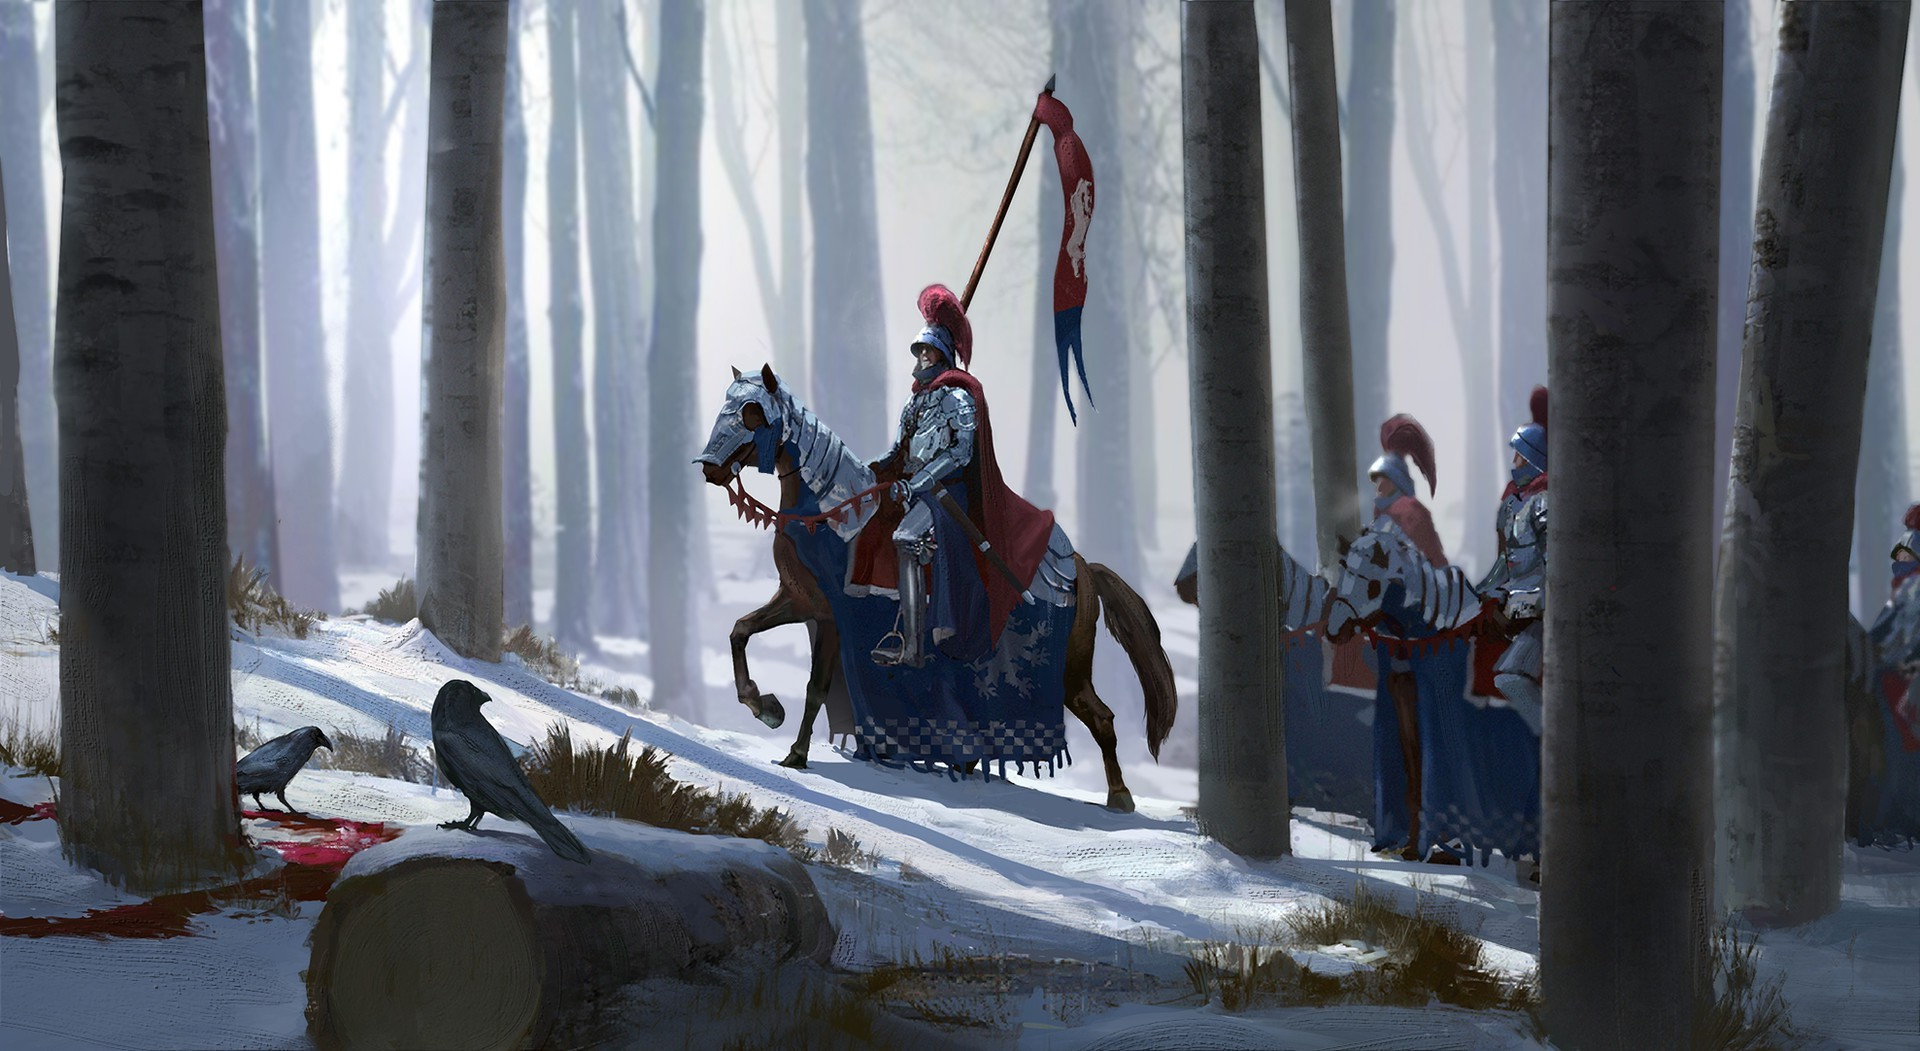 Artwork Fantasy Art Knight Knights Horse Snow Trees Forest Crow Wallpapers Hd Desktop And Mobile Backgrounds